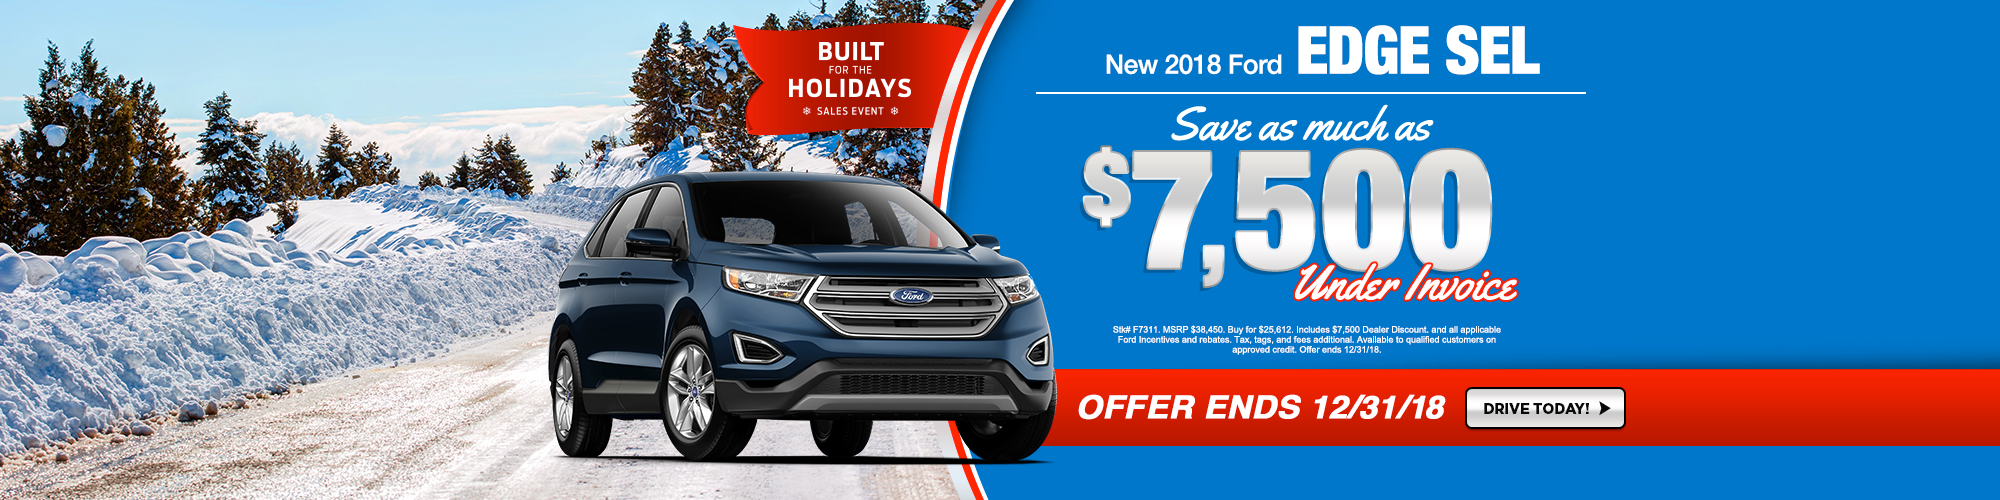 Buy A New  Ford Edge And Save  At Ray Price Ford Stroudsburg Pa